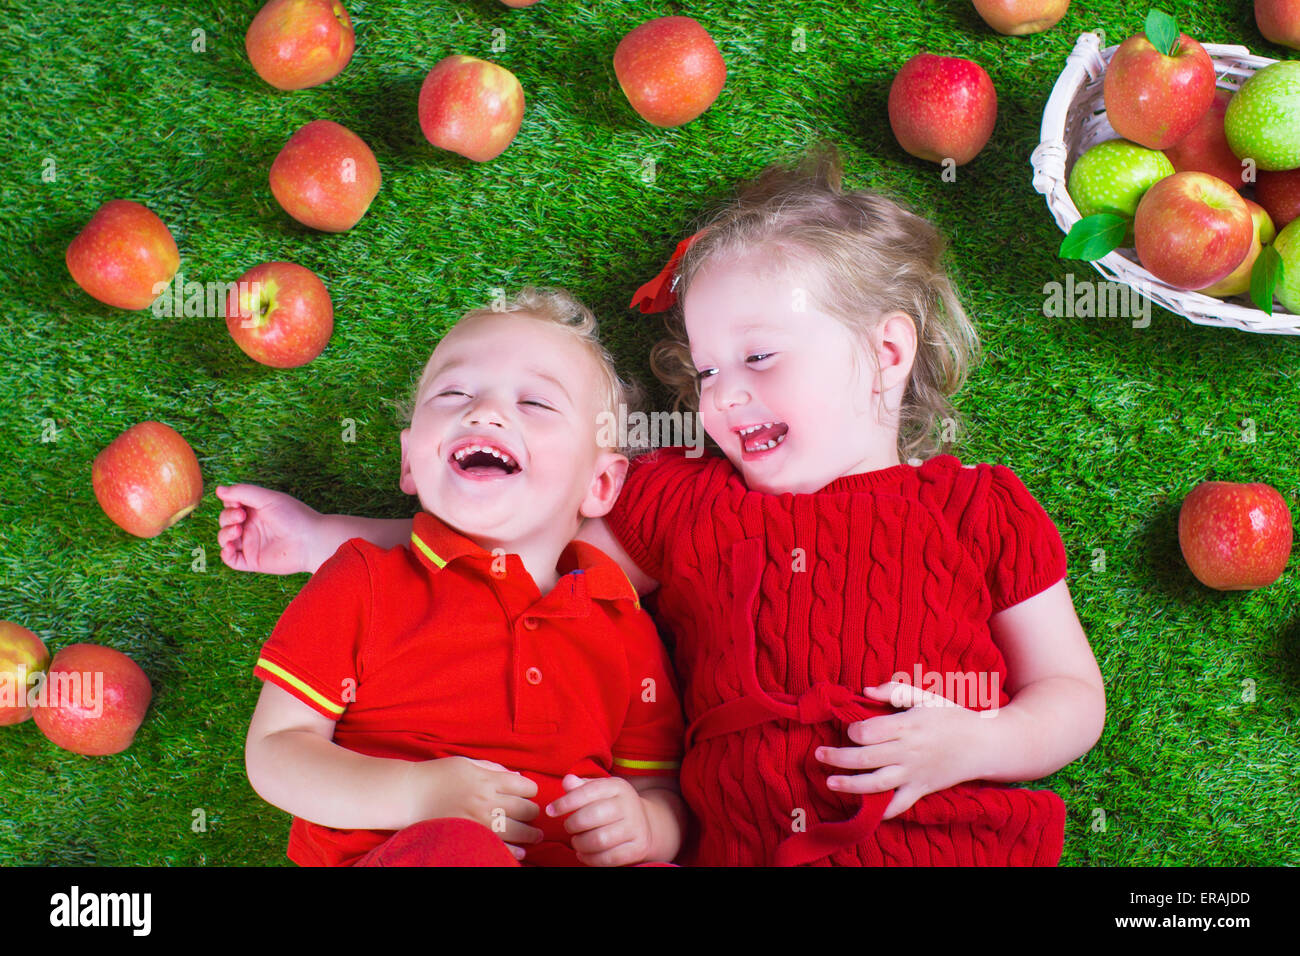 Child eating apple. Little girl and baby boy play peek a boo holding fresh ripe apples. Kids eat snack relaxing - Stock Image